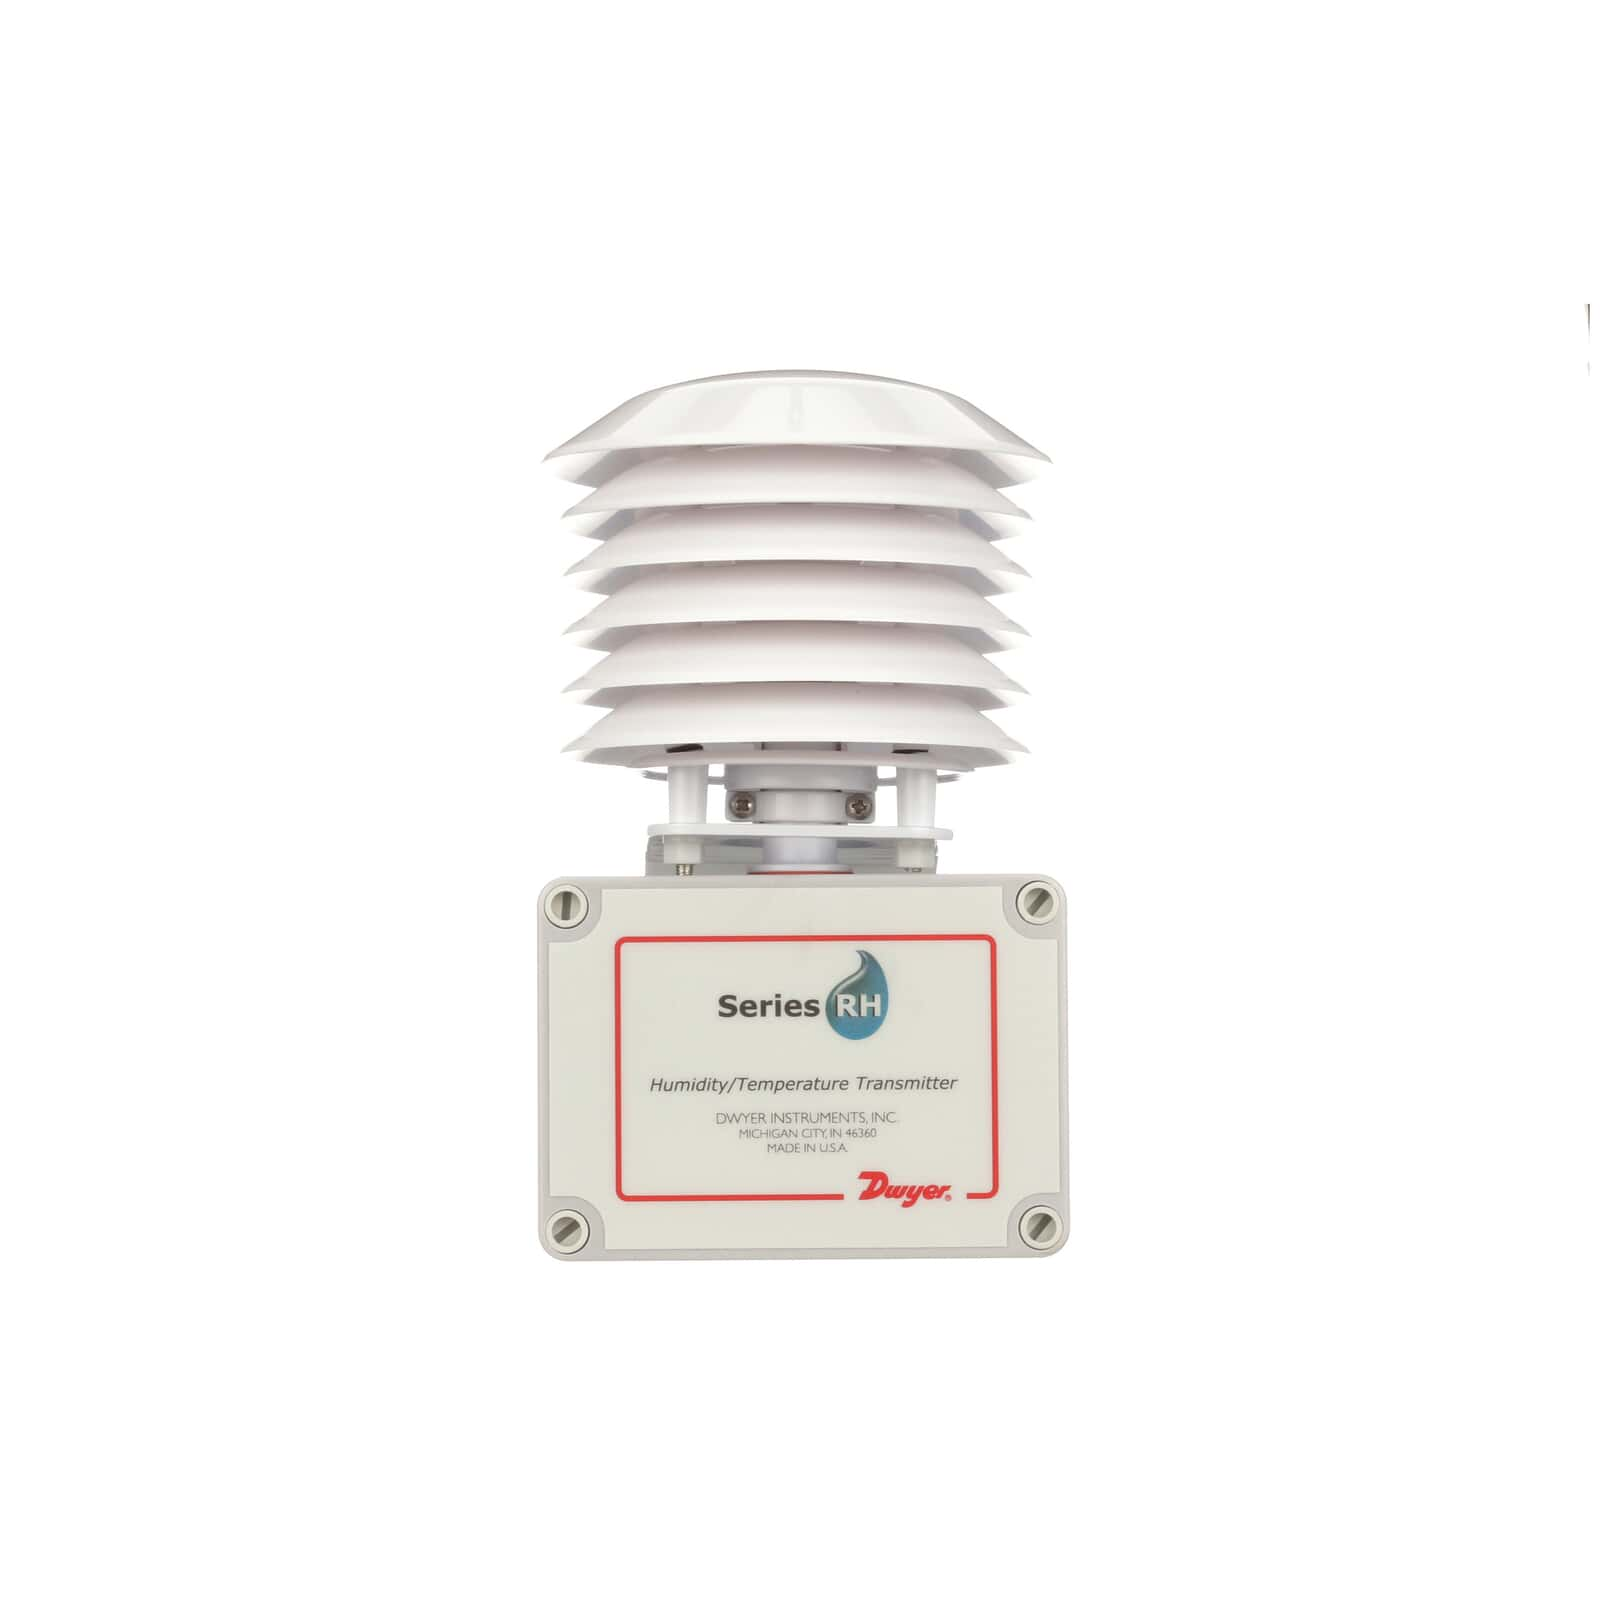 Series Rhp Humidity Temperature Transmitter Combine Voltage Or Sensor Current Loop Passive Outputs Sintered Filter Options